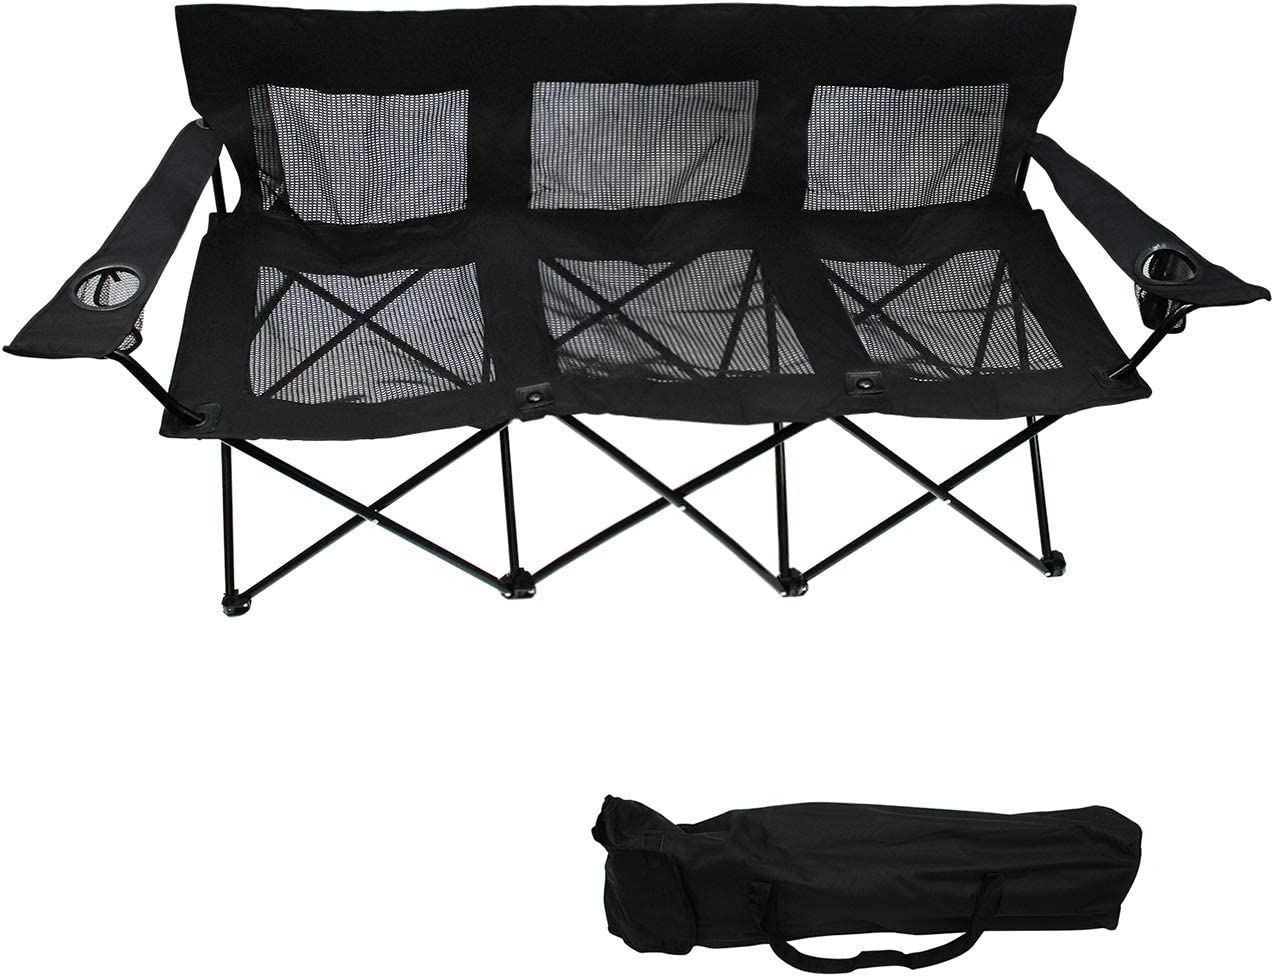 Trademark Innovations Triple Style Tri Camp Chair with Steel Frame and Mesh Seat and Back